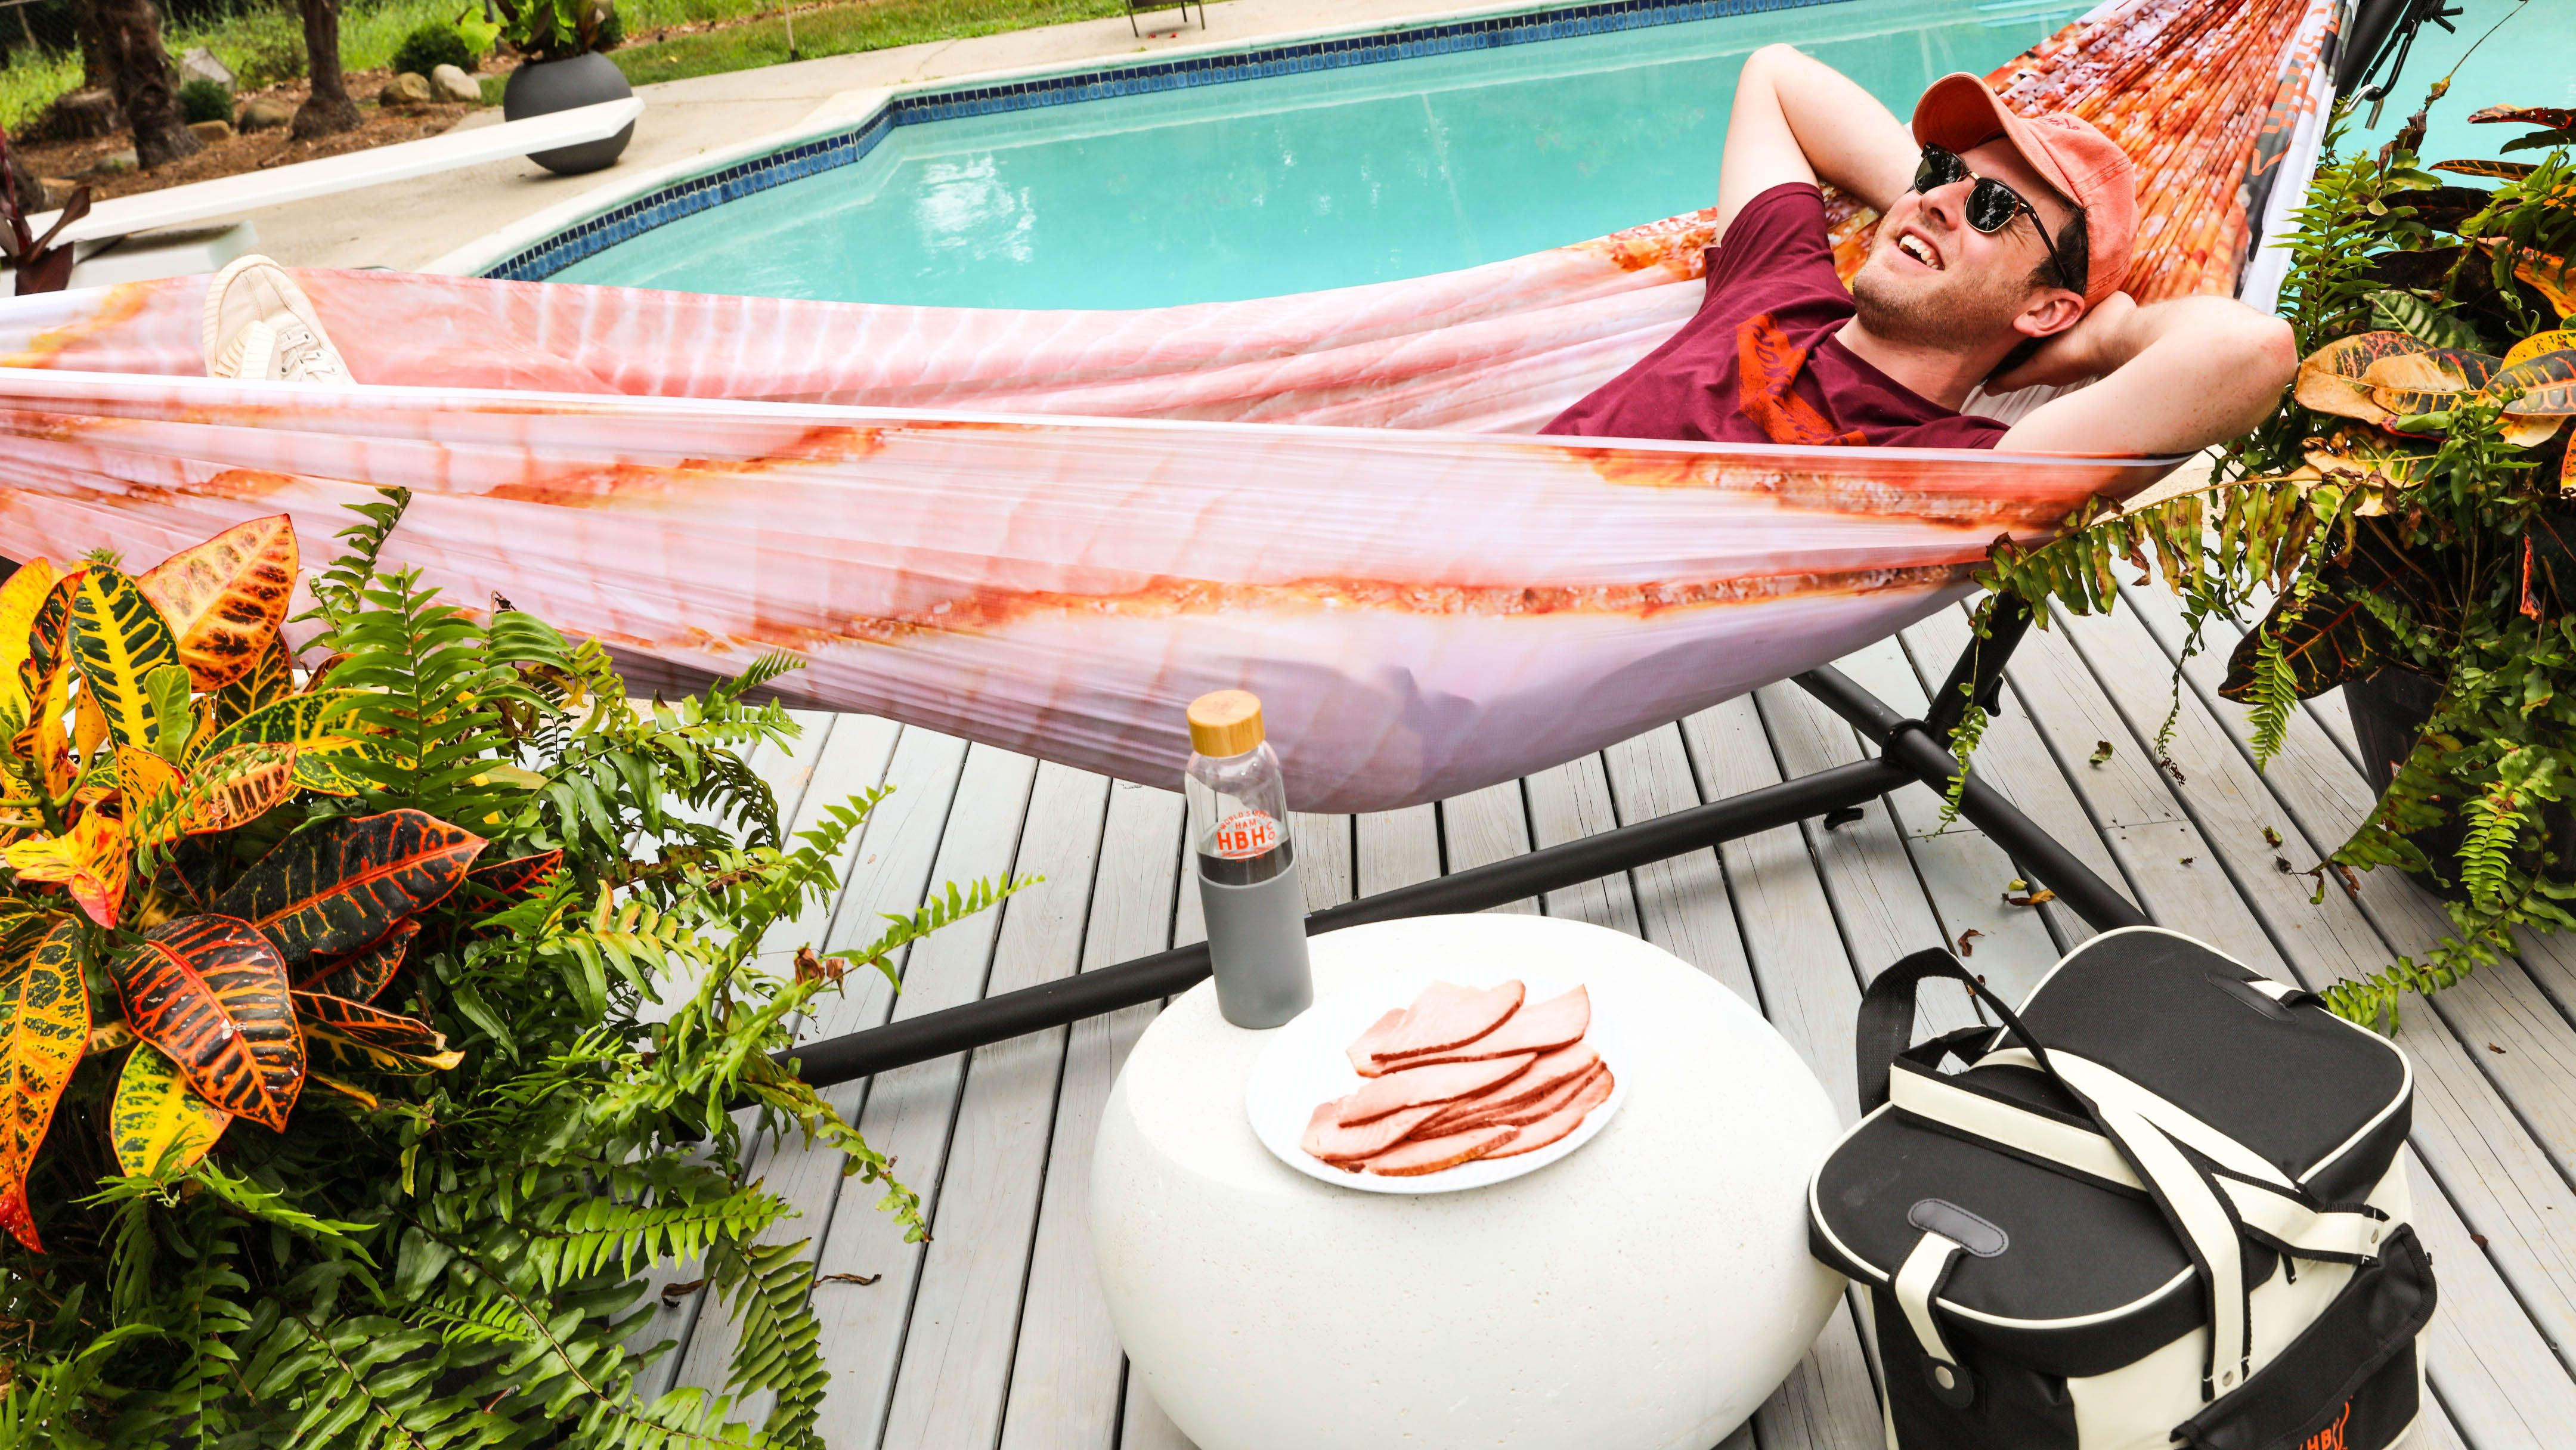 Honey Baked Ham Made HAMmocks In Case You Want To Lounge On Some Meat This Summer